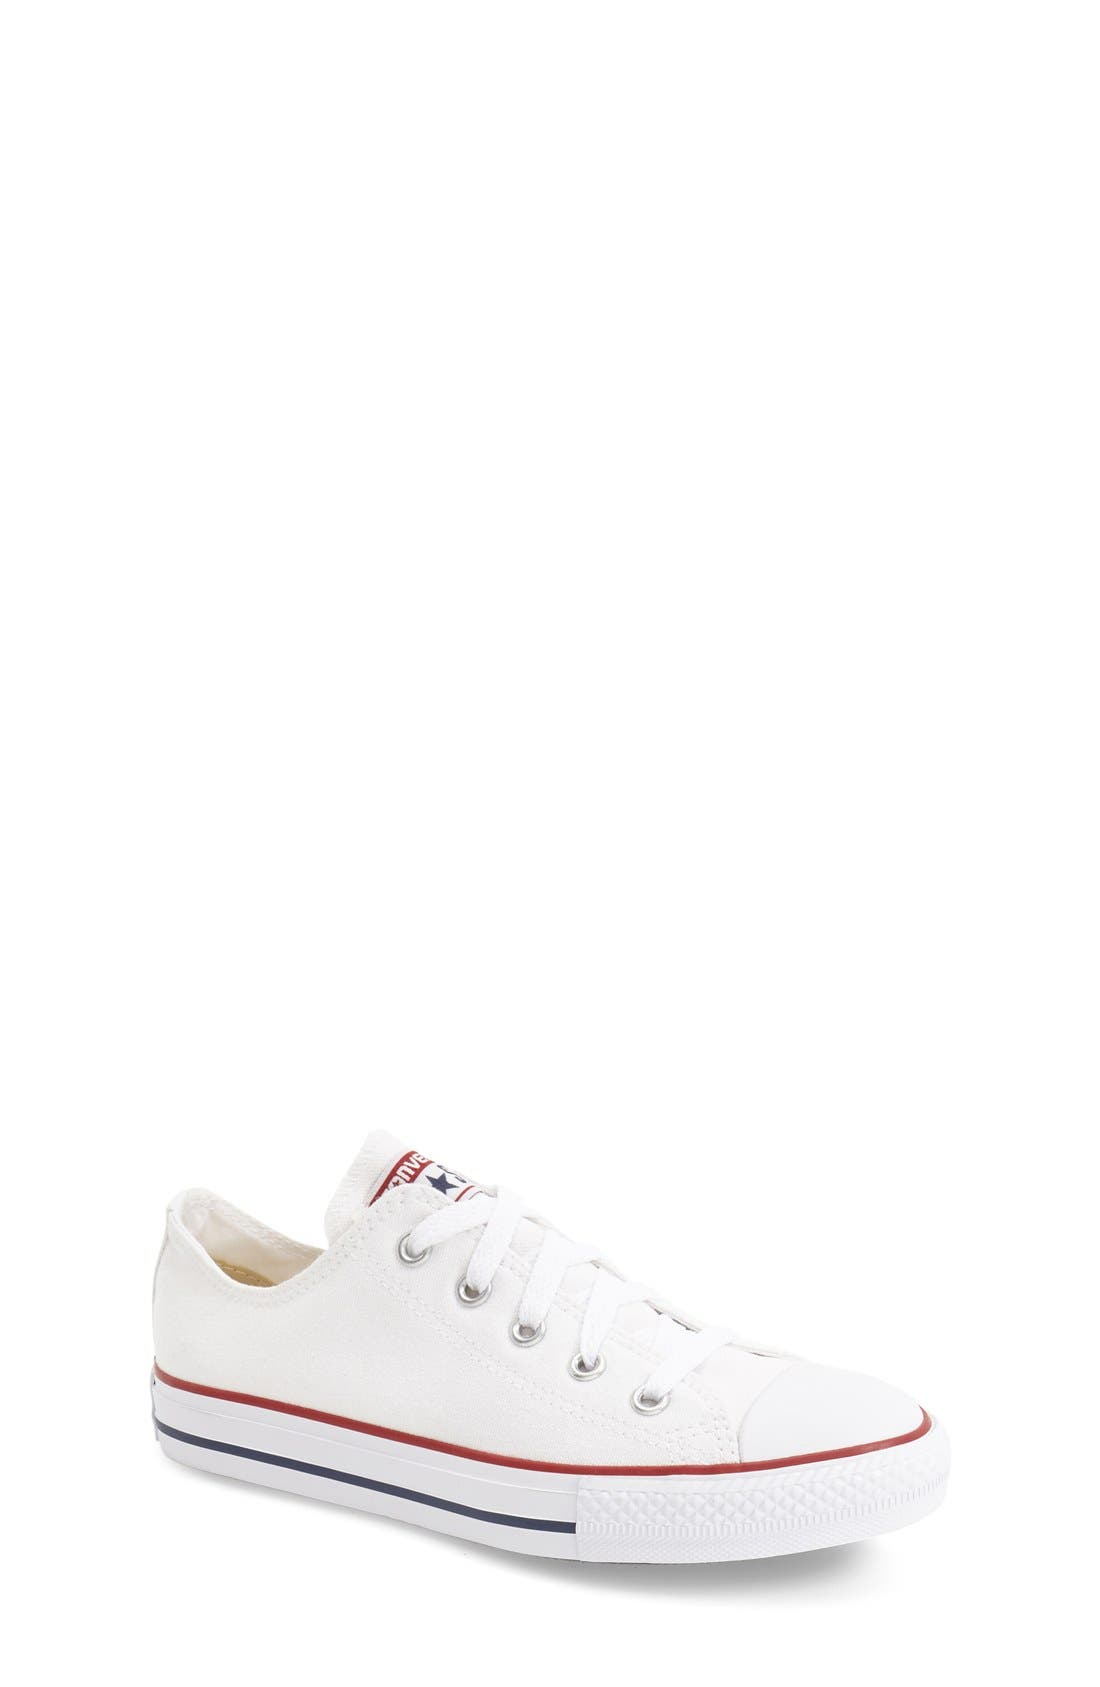 Chuck Taylor<sup>®</sup> Sneaker,                             Main thumbnail 1, color,                             White